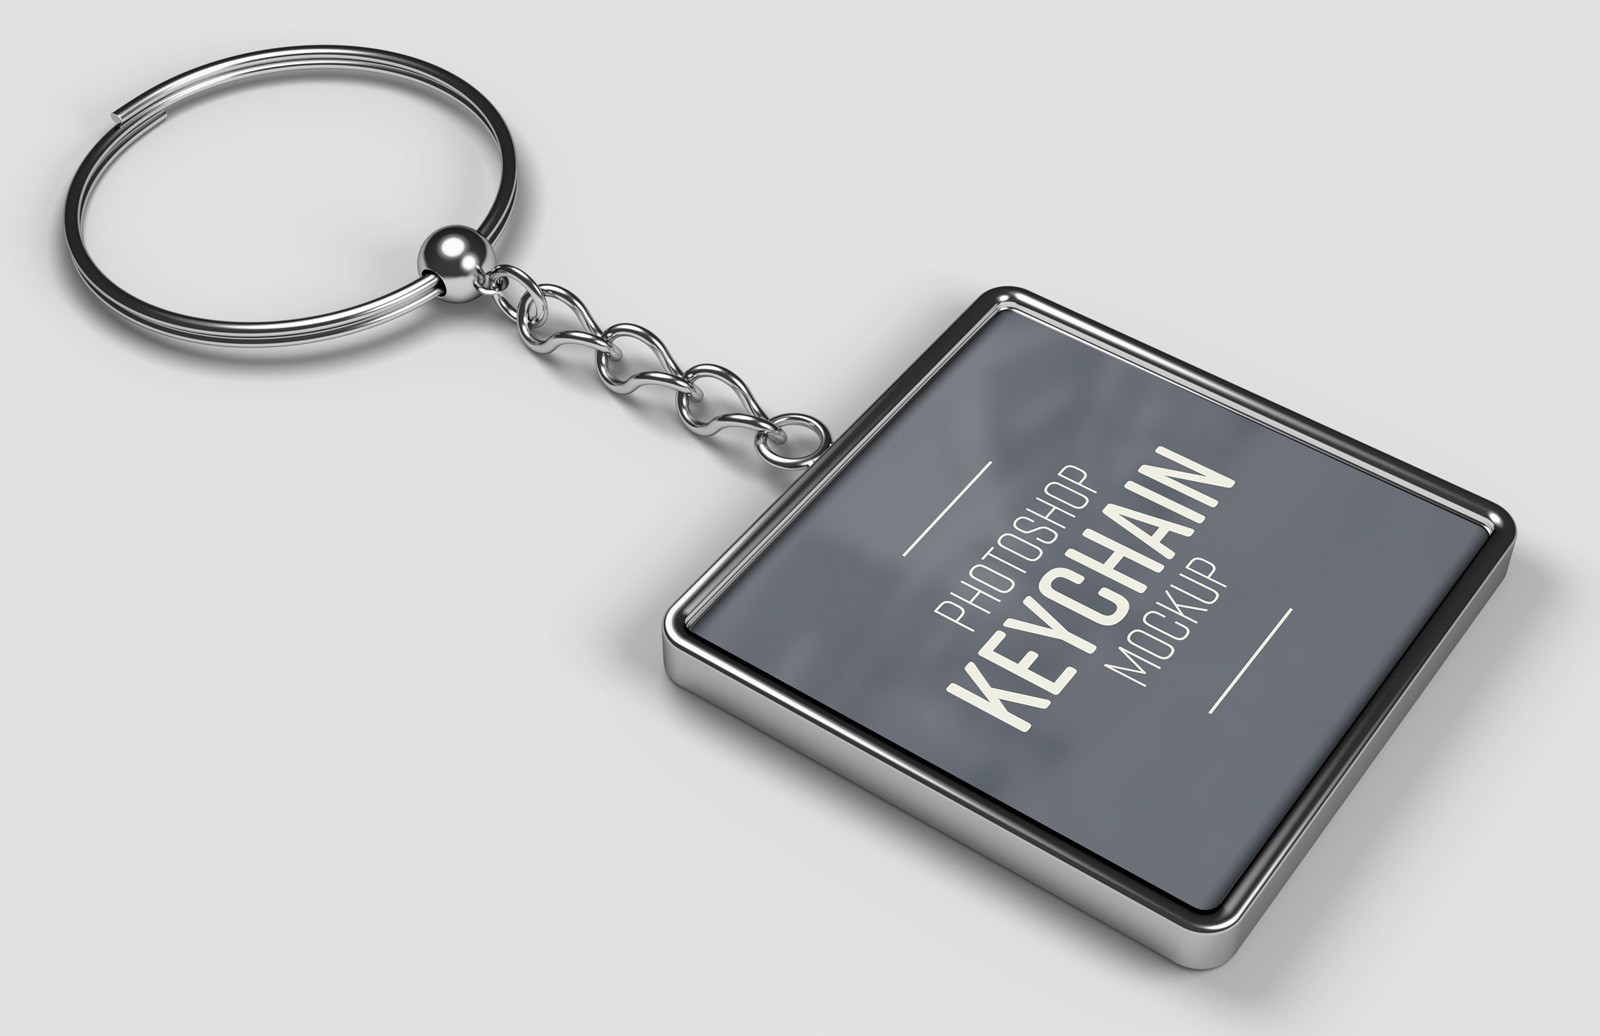 Rounded Square Keychain Mockup Preview 1